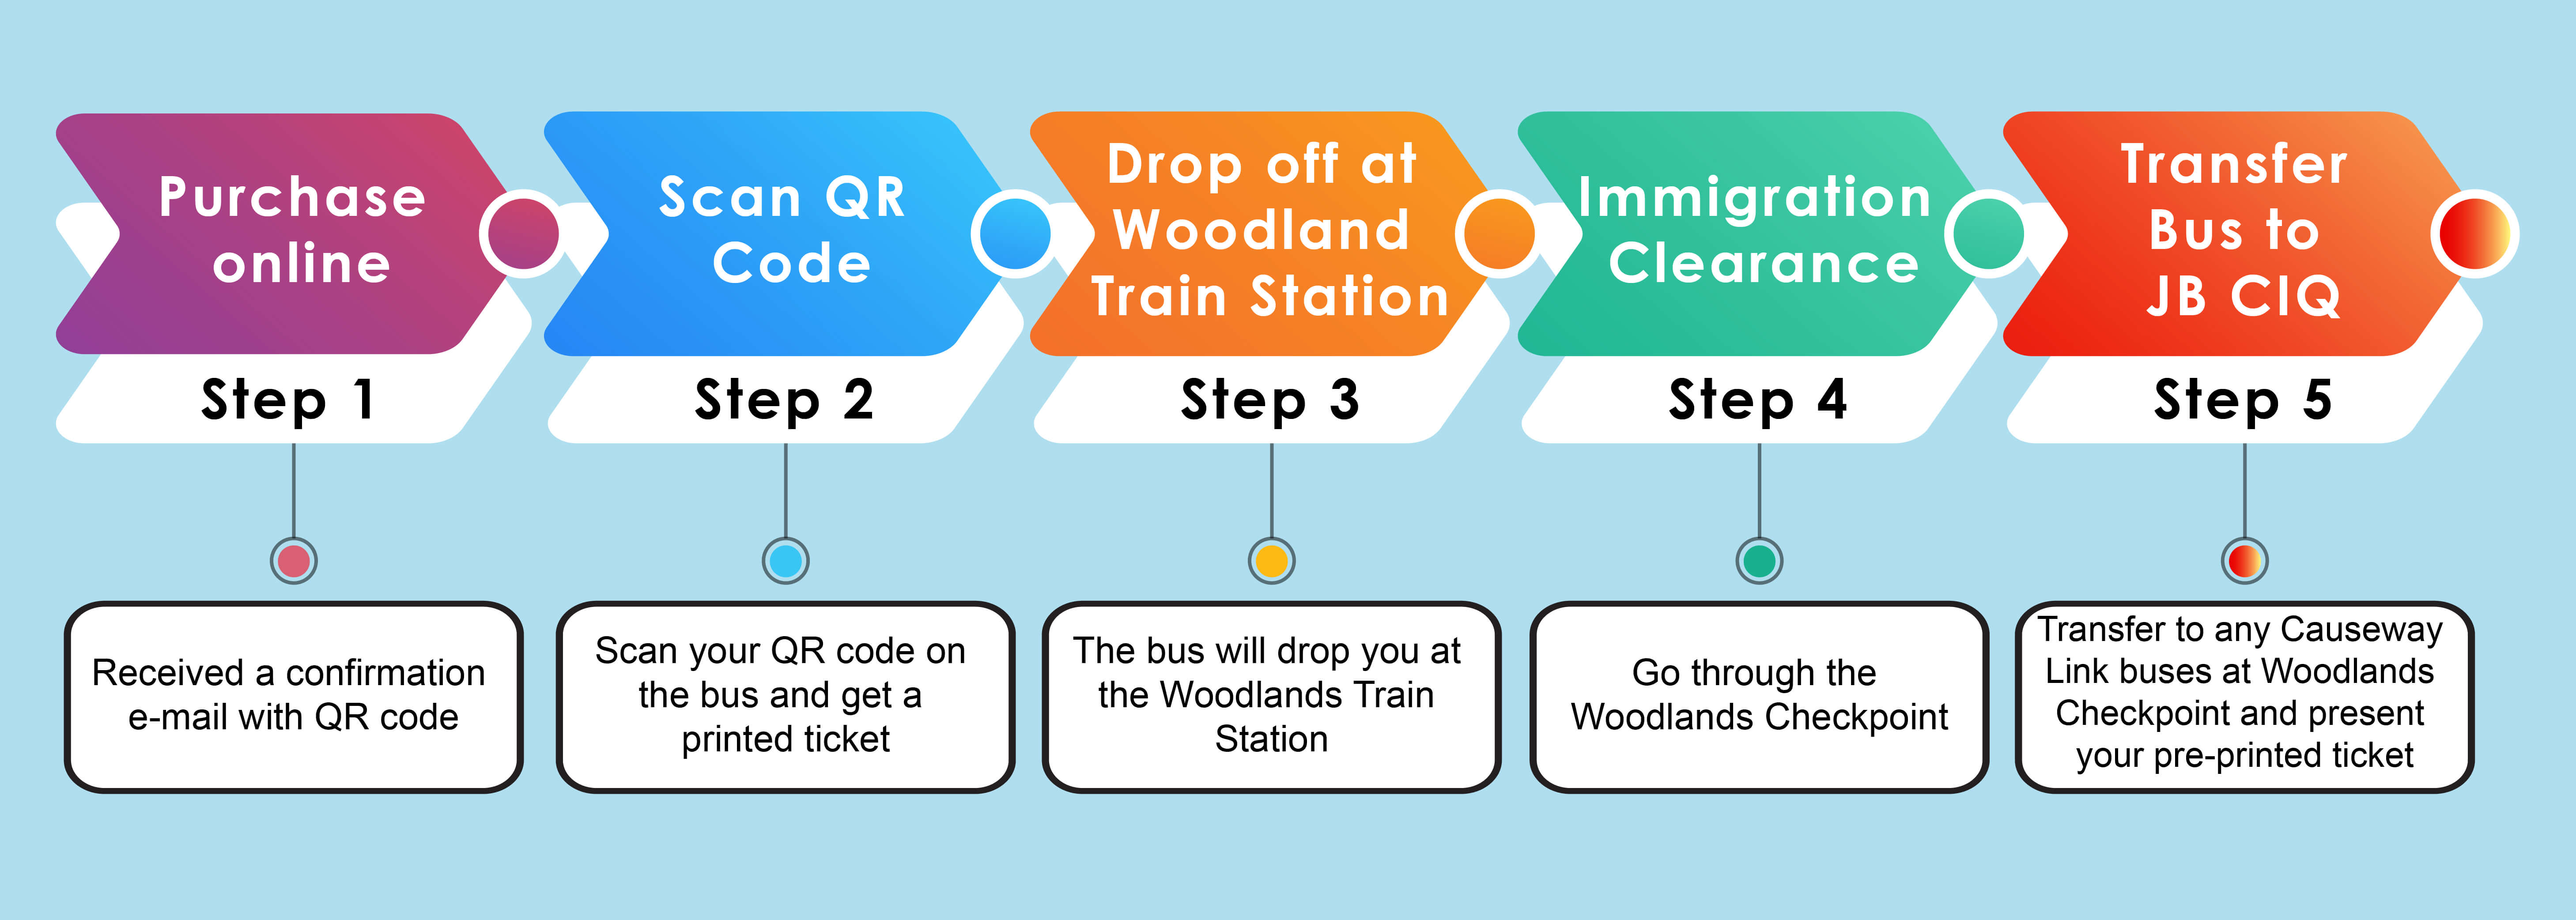 Step 1: Purchase Online (Received a confirmation e-mail with QR code), Step 2: Scan QR Code(Scan your QR code on the bus and get a printed ticket), Step 3: Drop off at woodland train station (The bus will drop you at the Woodlands Train Station), Step 4: Immigration Clearance (Go through the Woodlands Checkpoint), Step 5: Transfer to any Causeway Link buses at Woodlands Checkpoint and present your pre-printed ticket